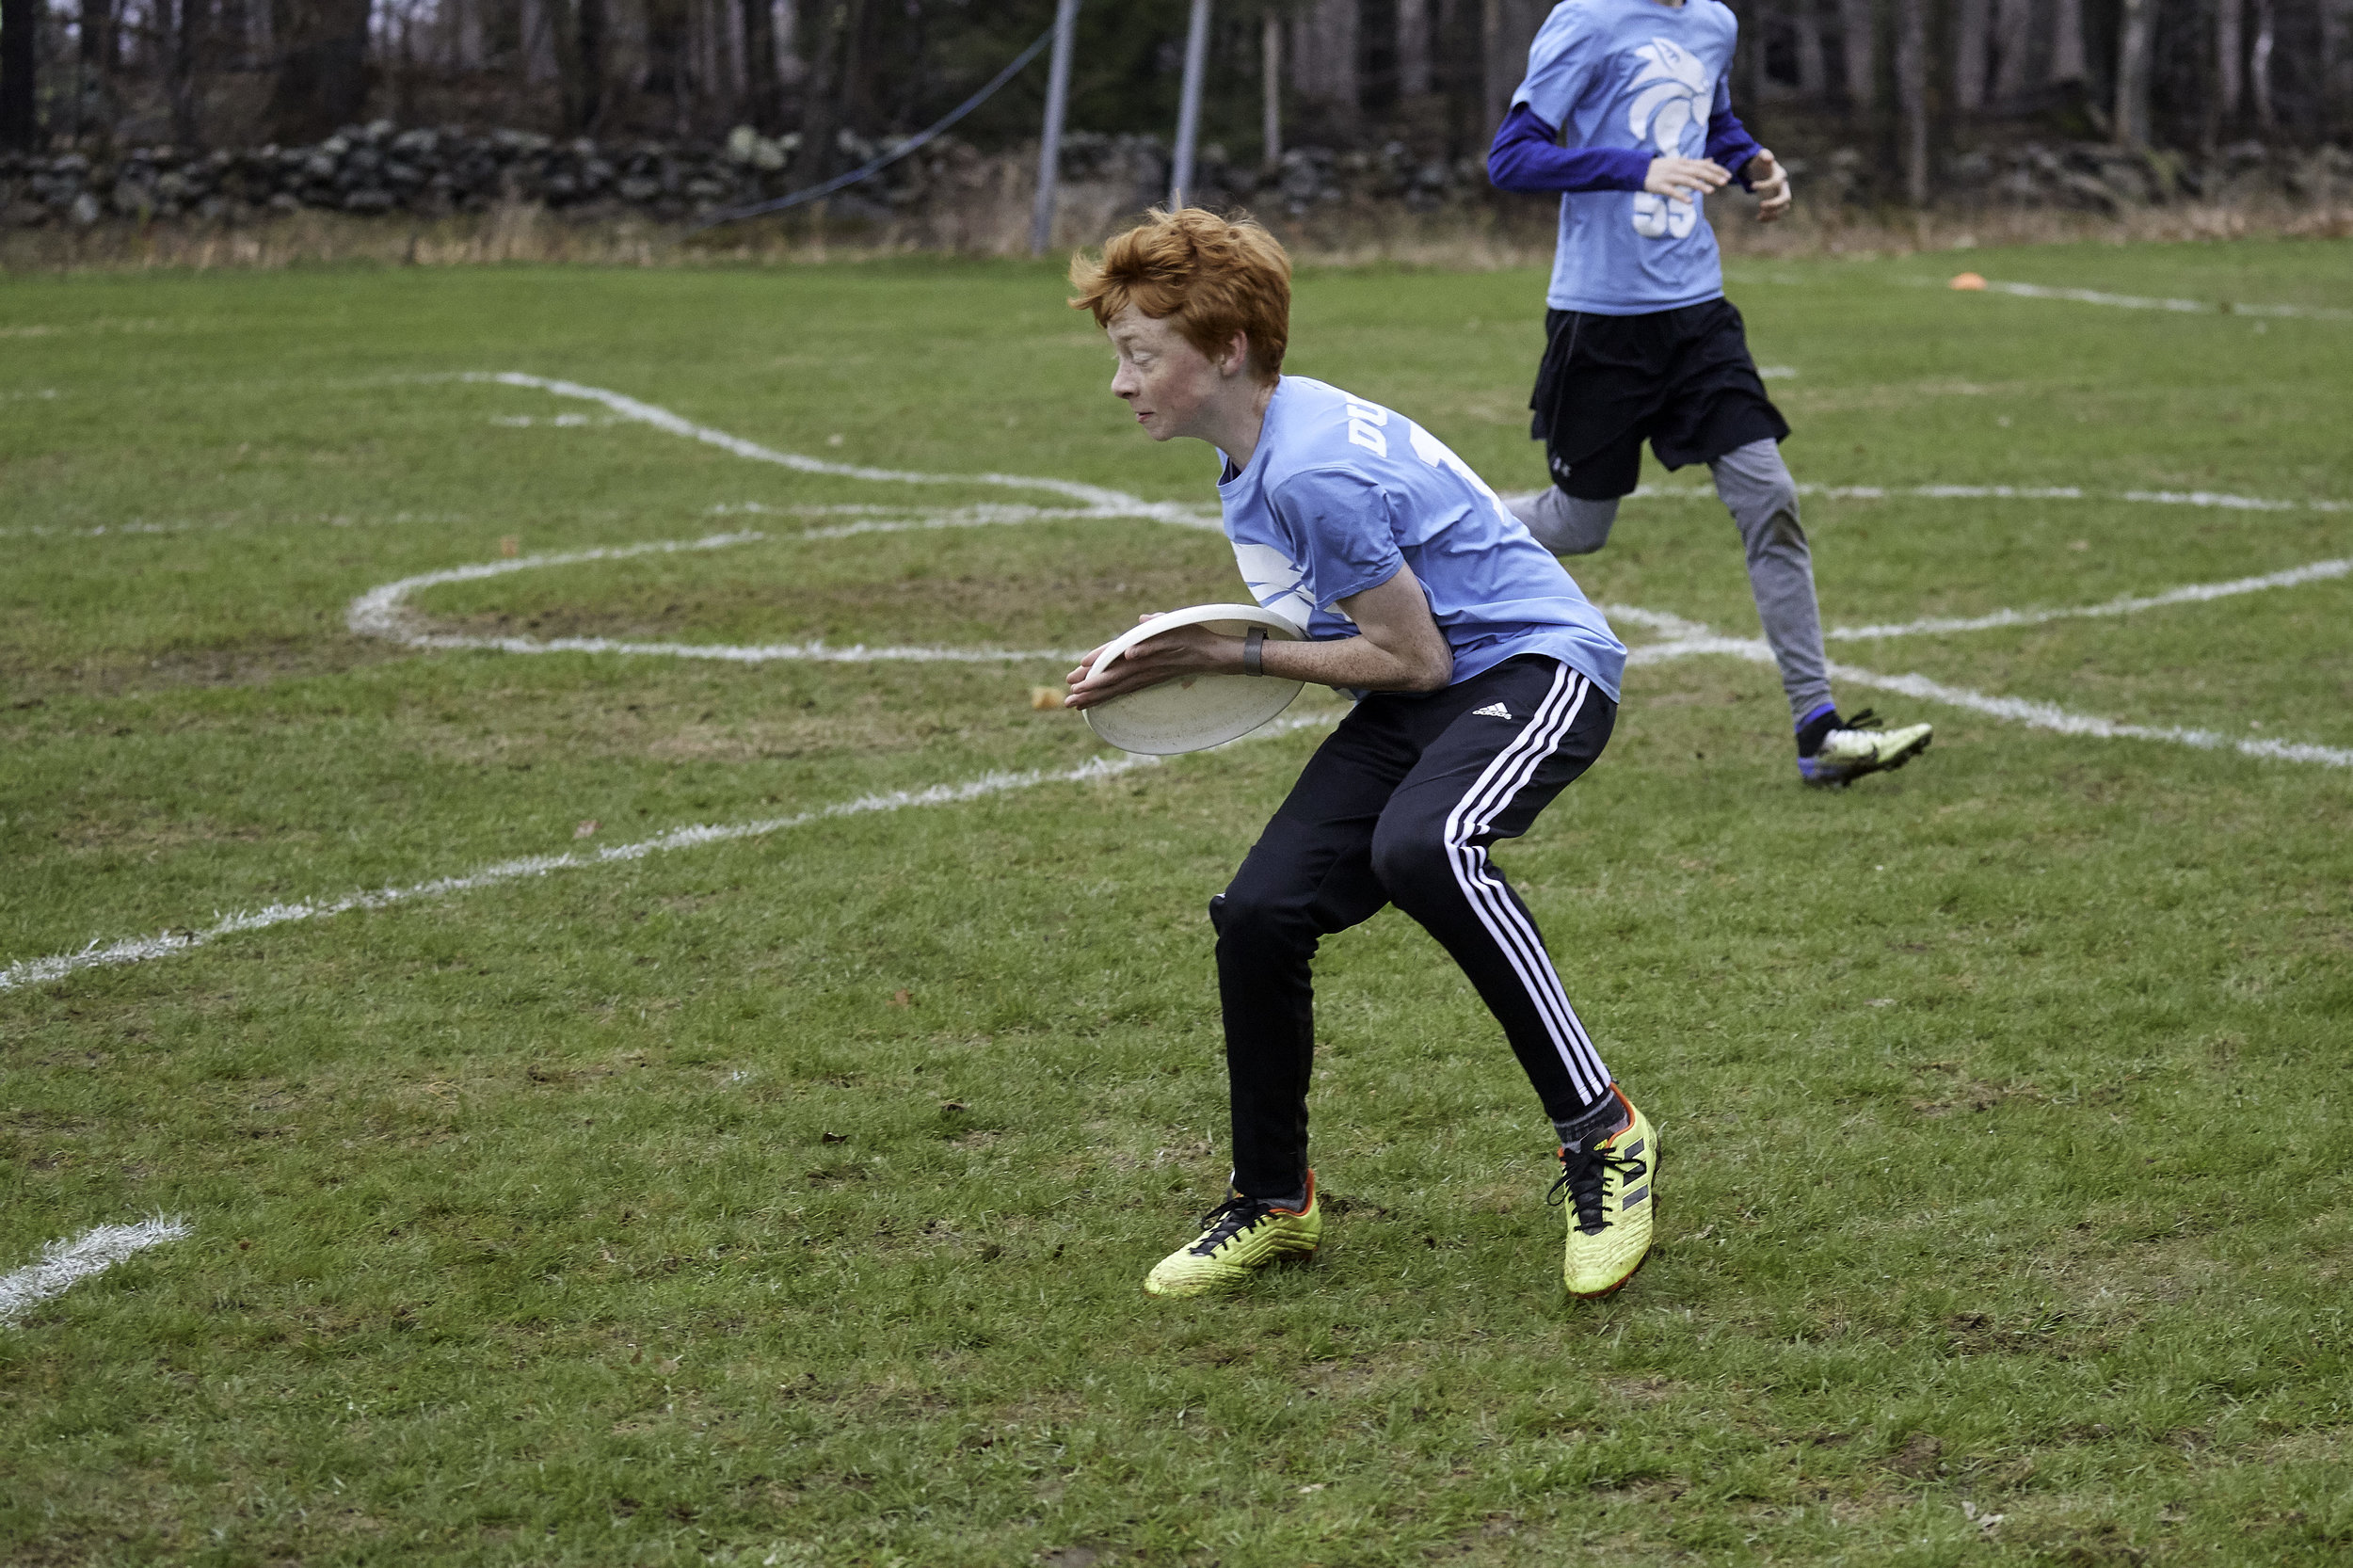 Ultimate Frisbee vs. Eagle Hill School - May 3, 2019 - 188883.jpg